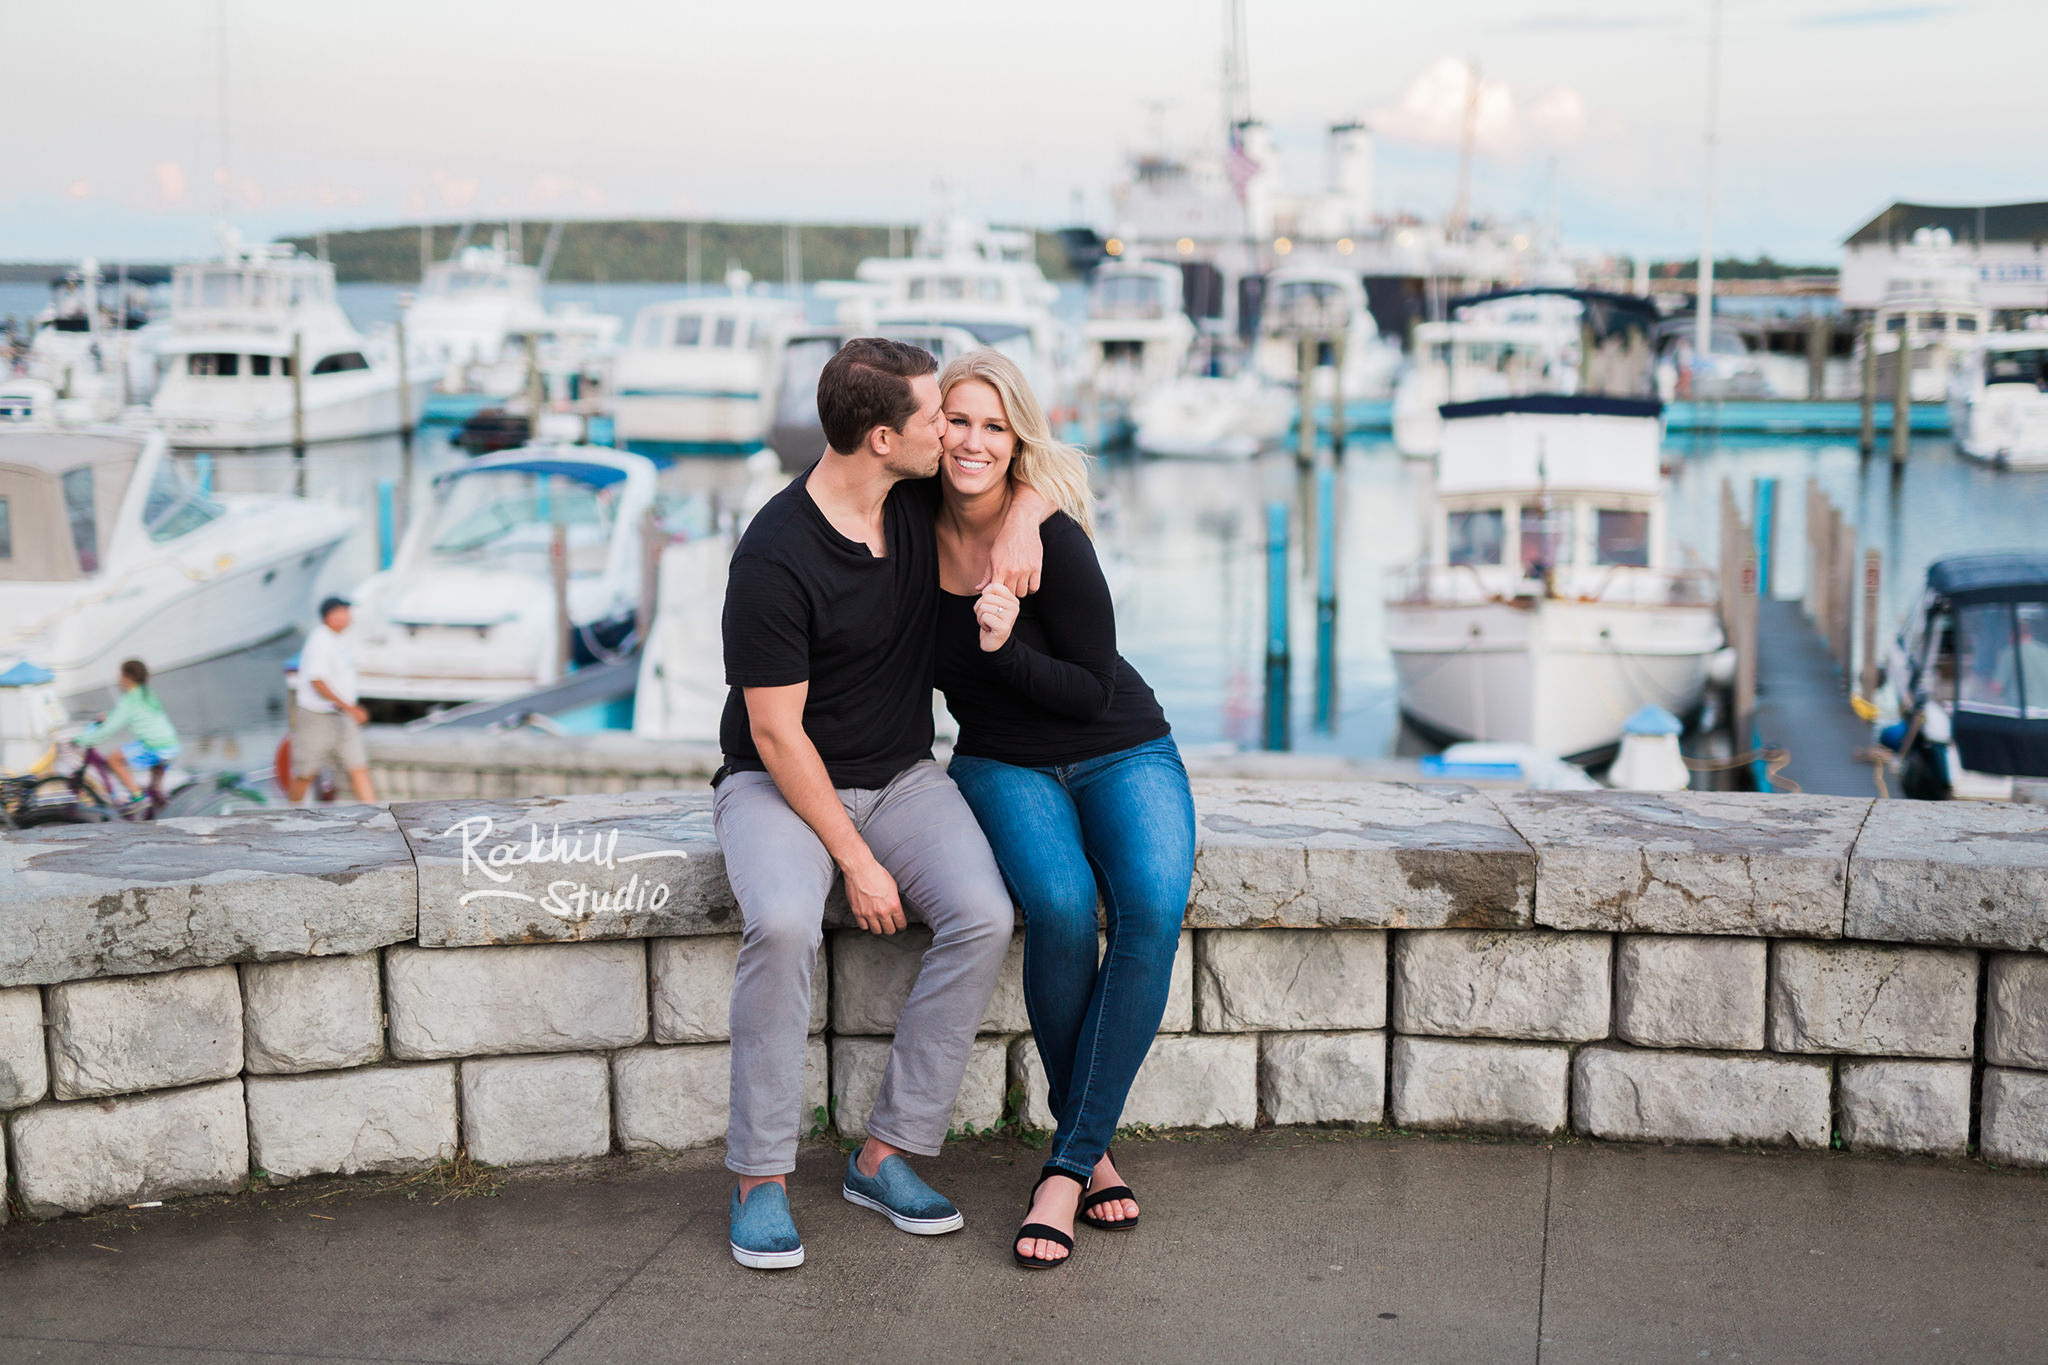 Mackinac Island Engagement, marquette park, Traverse City wedding photographer Rockhill Studio